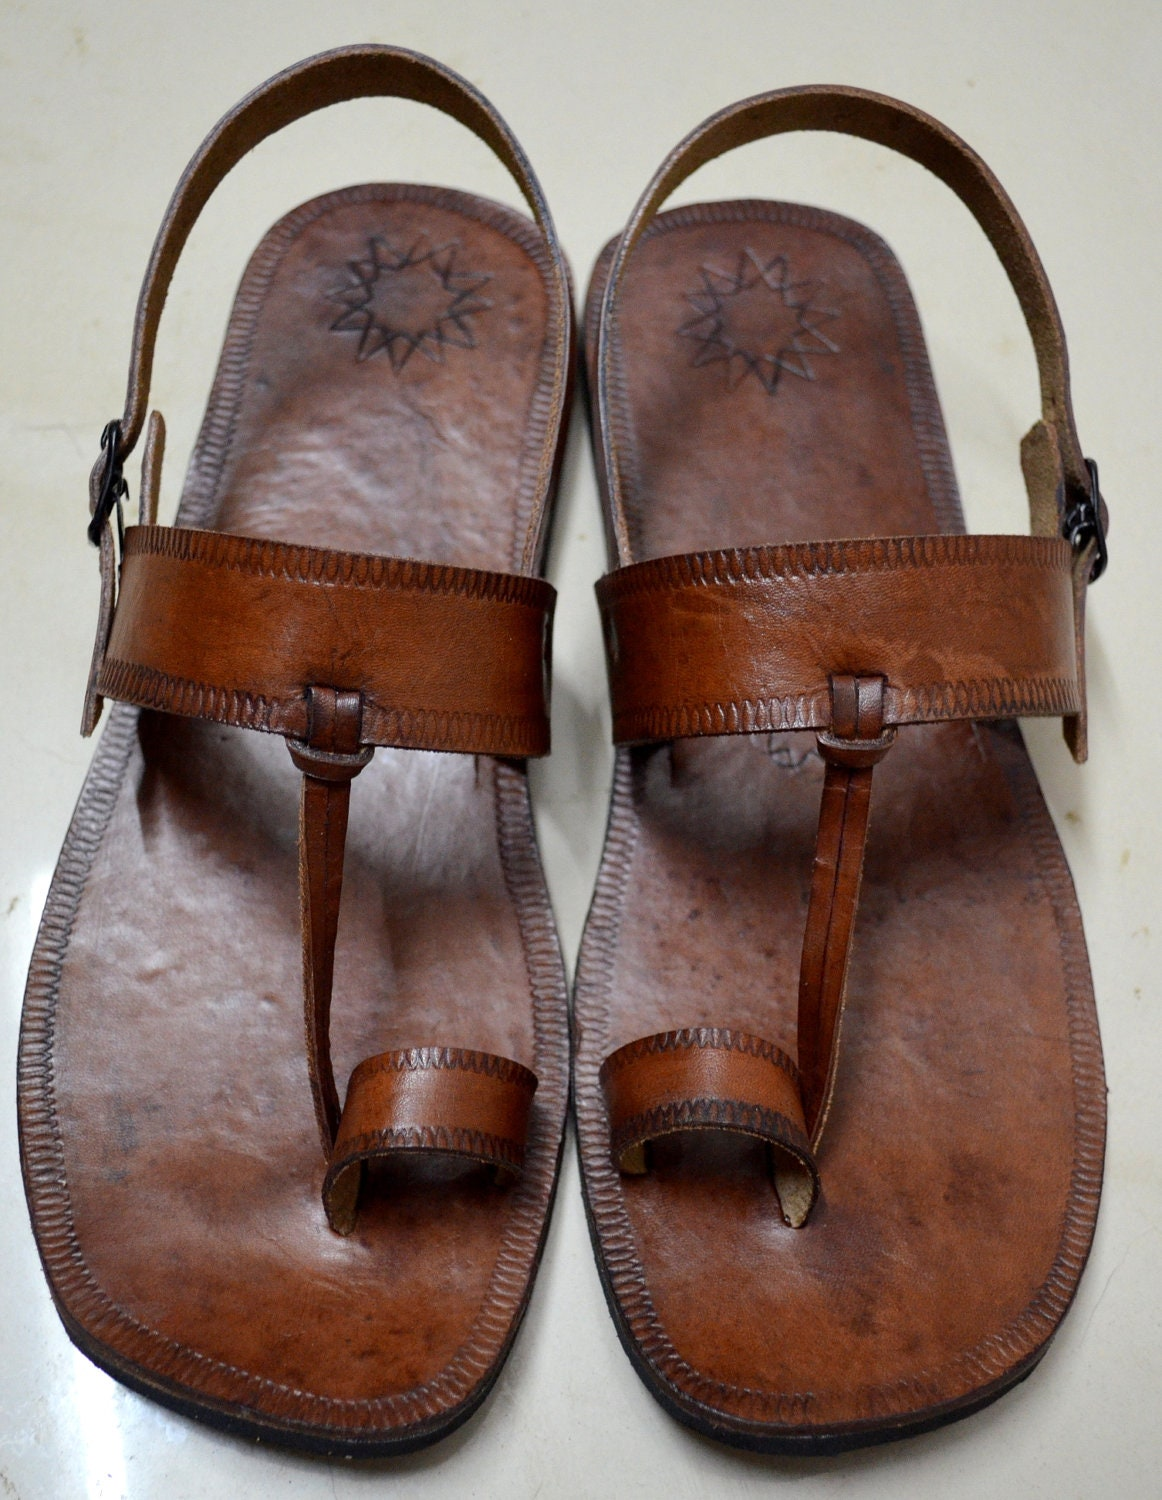 Mens Leather Sandals From India ~ Mens Dress Sandals